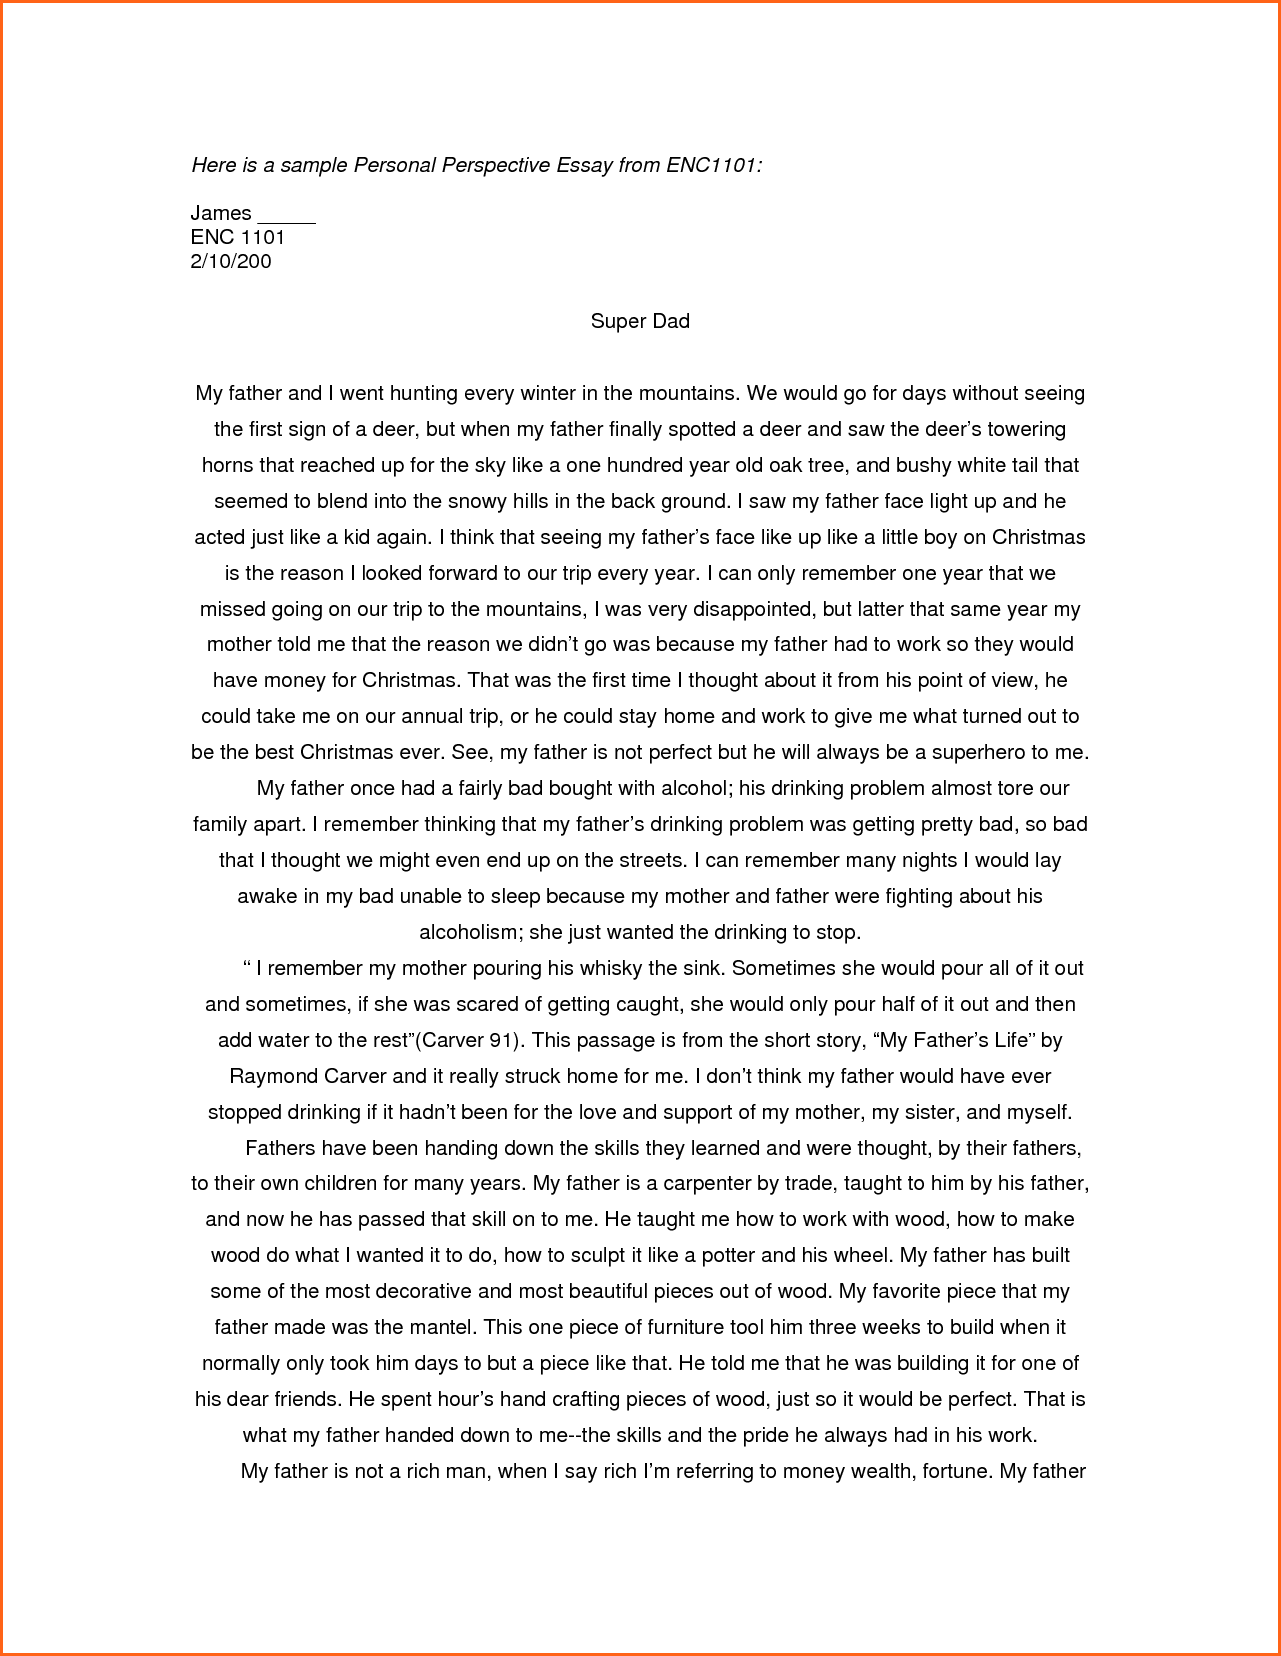 003 Essay Example Examples Of Personal Essays For College Applications L Stupendous Writing Prompts Ks2 Structure Outline Format Scholarships Full